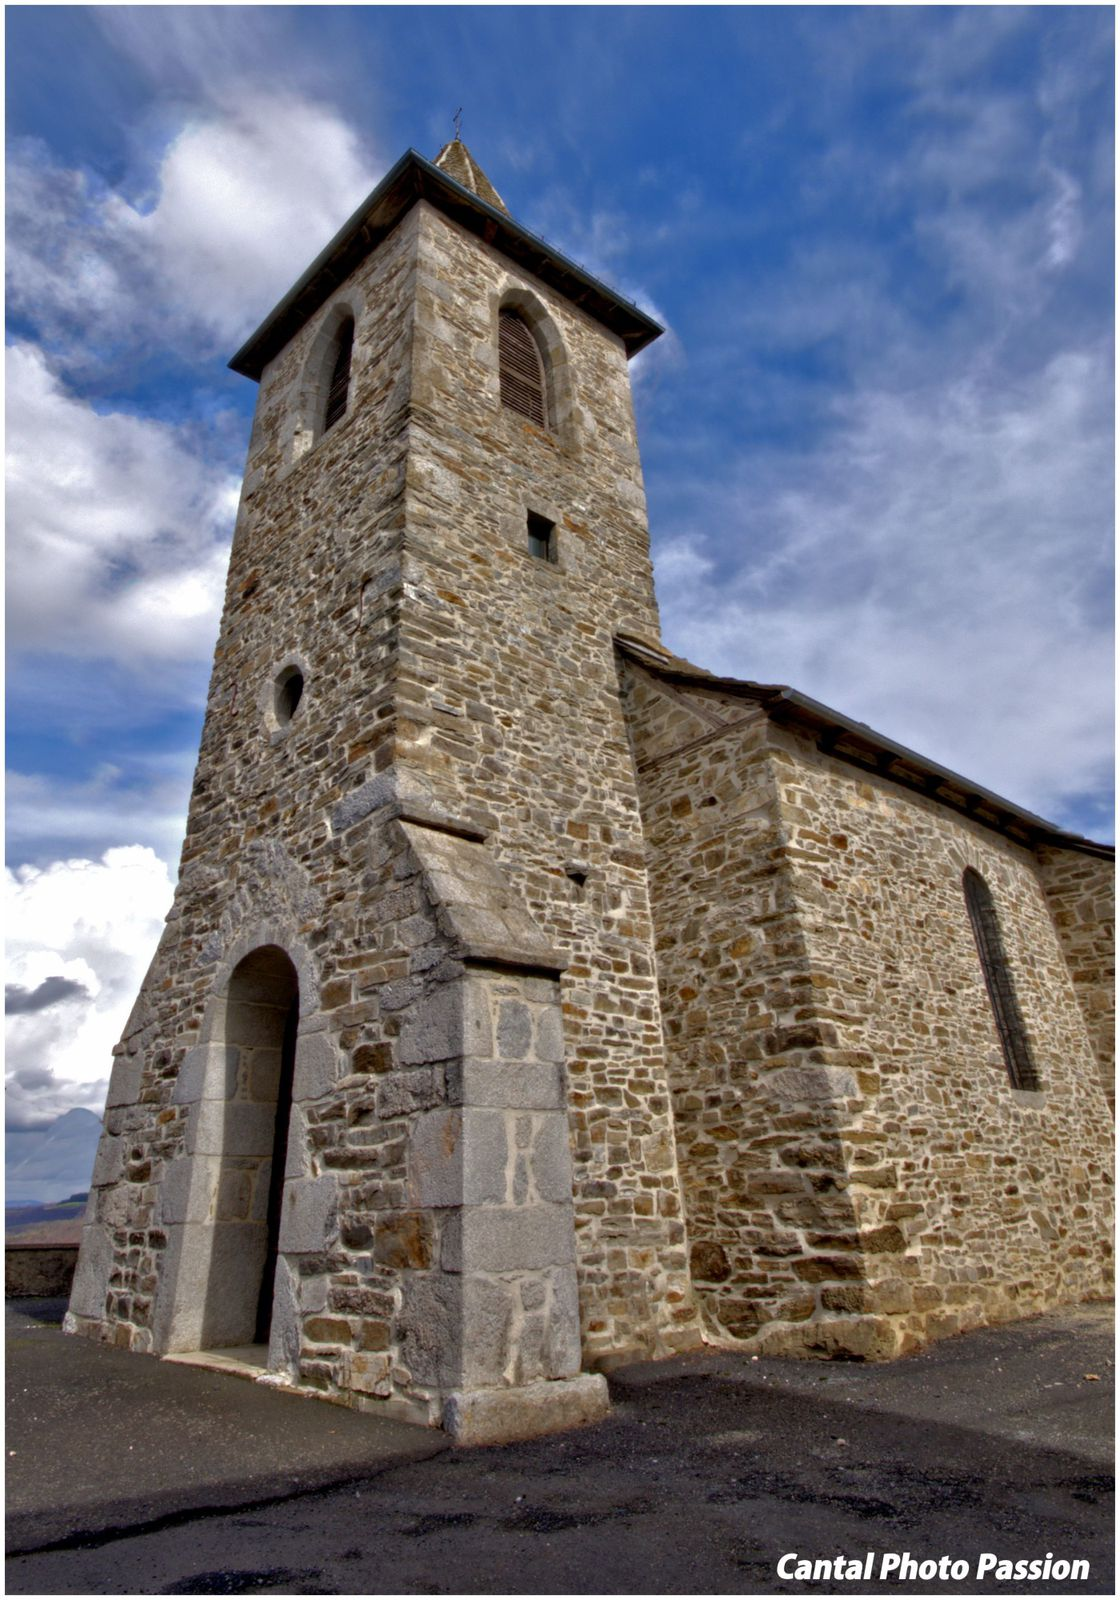 Eglise de Lapeyrugue Cantal